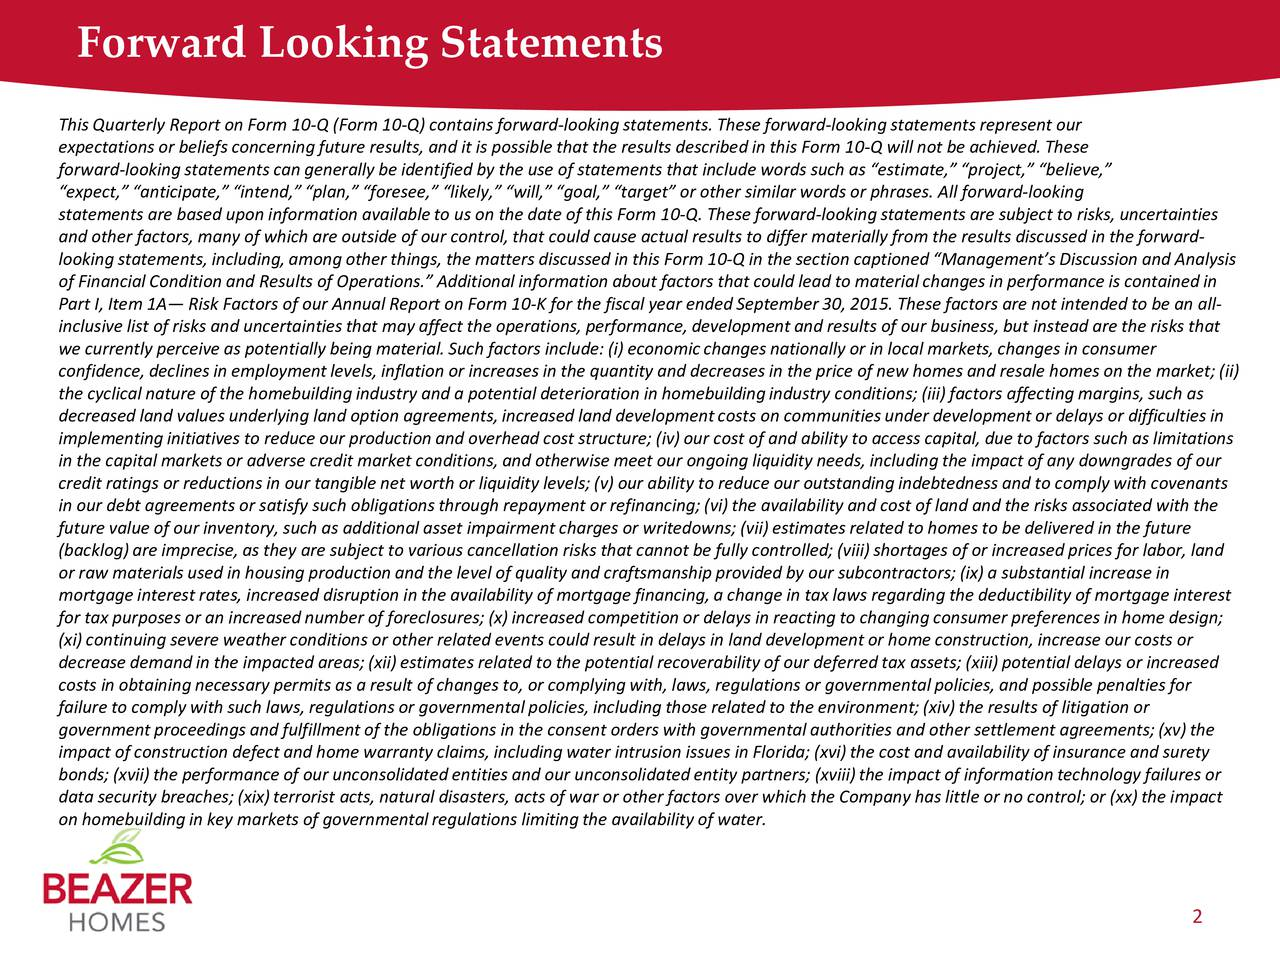 This Quarterly Report on Form 10-Q (Form 10-Q) contains forward-looking statements. These forward-looking statements represent our expectations or beliefs concerning future results, and it is possible that the results described in this Form 10-Q will not be achieved. These forward-looking statements can generally be identified by the use of statements that include words such as estimate, project, believe, expect, anticipate, intend, plan, foresee, likely, will, goal, target or other similar words or phrases. All forward-looking statements are based upon information available to us on the date of this Form 10-Q. These forward-lookingstatements are subject to risks, uncertainties and other factors, many of which are outside of our control, that could cause actual results to differ materially from the results discussed in the forward- looking statements, including, among other things, the matters discussed in this Form 10-Q in the section captioned Managements Discussion and Analysis of Financial Condition and Results of Operations. Additional information about factors that could lead to material changes in performance is contained in Part I, Item 1A Risk Factors of our Annual Report on Form 10-K for the fiscal year ended September 30, 2015. These factors are not intended to be an all- inclusive list of risks and uncertainties that may affect the operations, performance, developmentand results of our business, but instead are the risks that we currently perceive as potentially being material. Such factors include: (i) economicchanges nationally or in local markets, changes in consumer confidence, declines in employmentlevels, inflation or increases in the quantity and decreases in the price of new homes and resale homes on the market; (ii) the cyclical nature of the homebuildingindustry and a potential deterioration in homebuildingindustry conditions; (iii) factors affecting margins, such as decreased land values underlying land option agreements, increased land develo